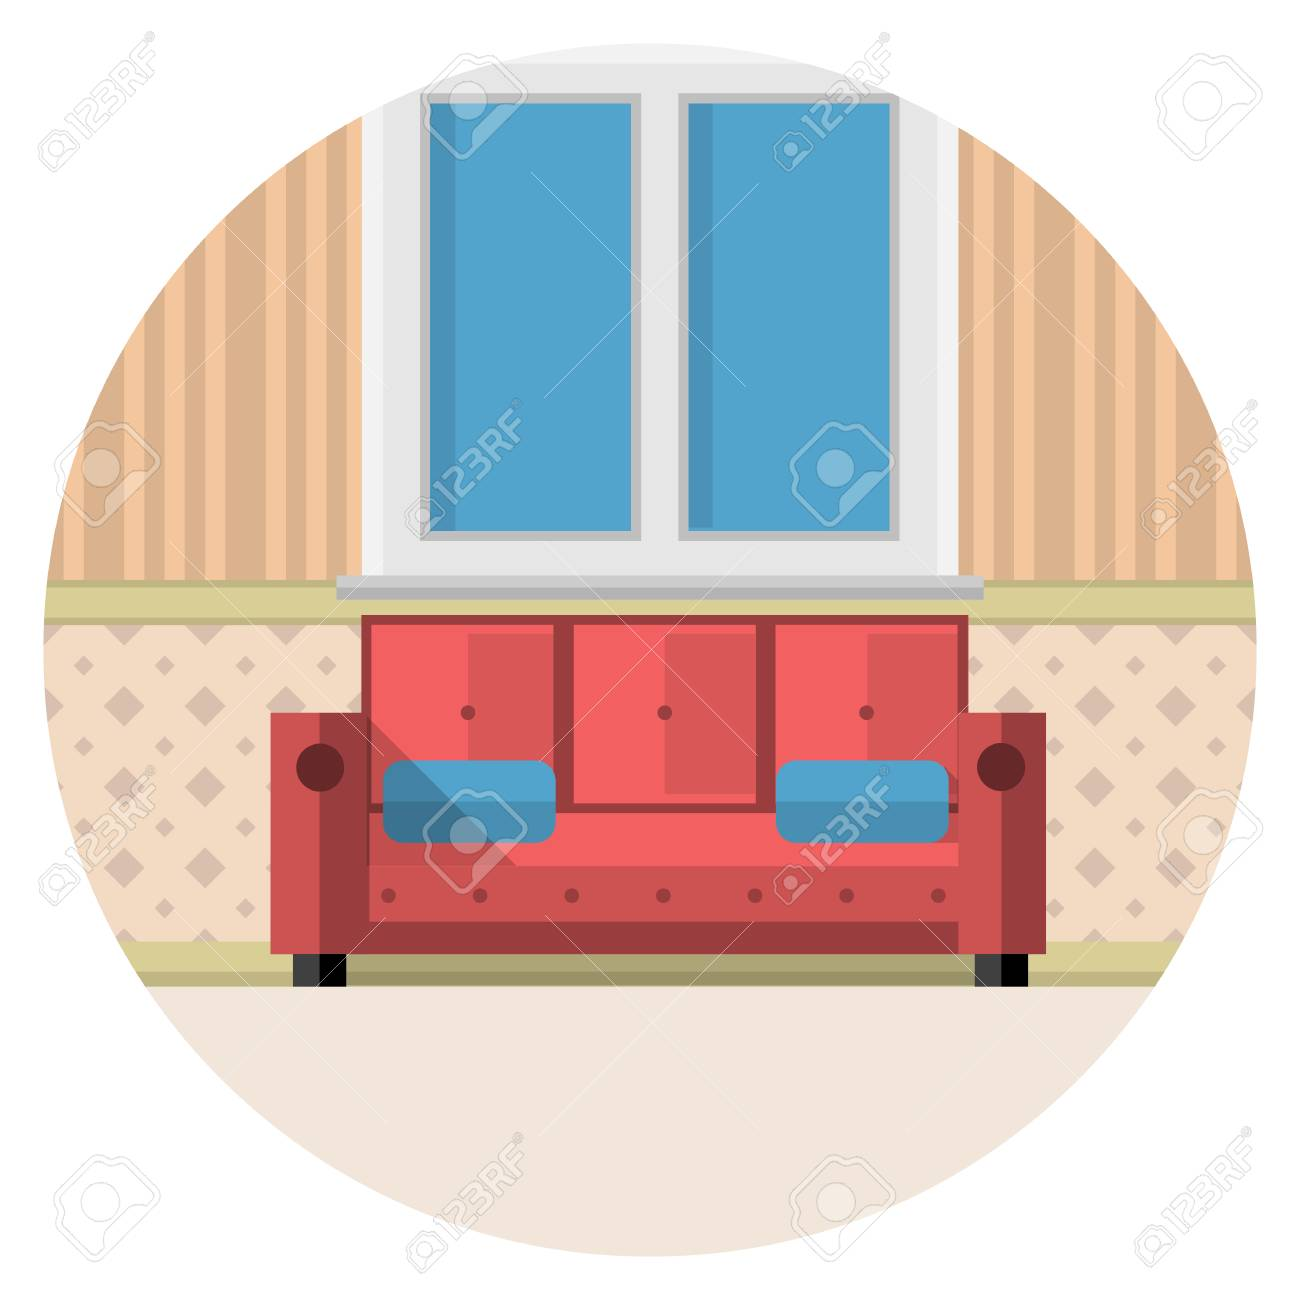 Red Sofa With Two Blue Pillows Under The Window With White Frame